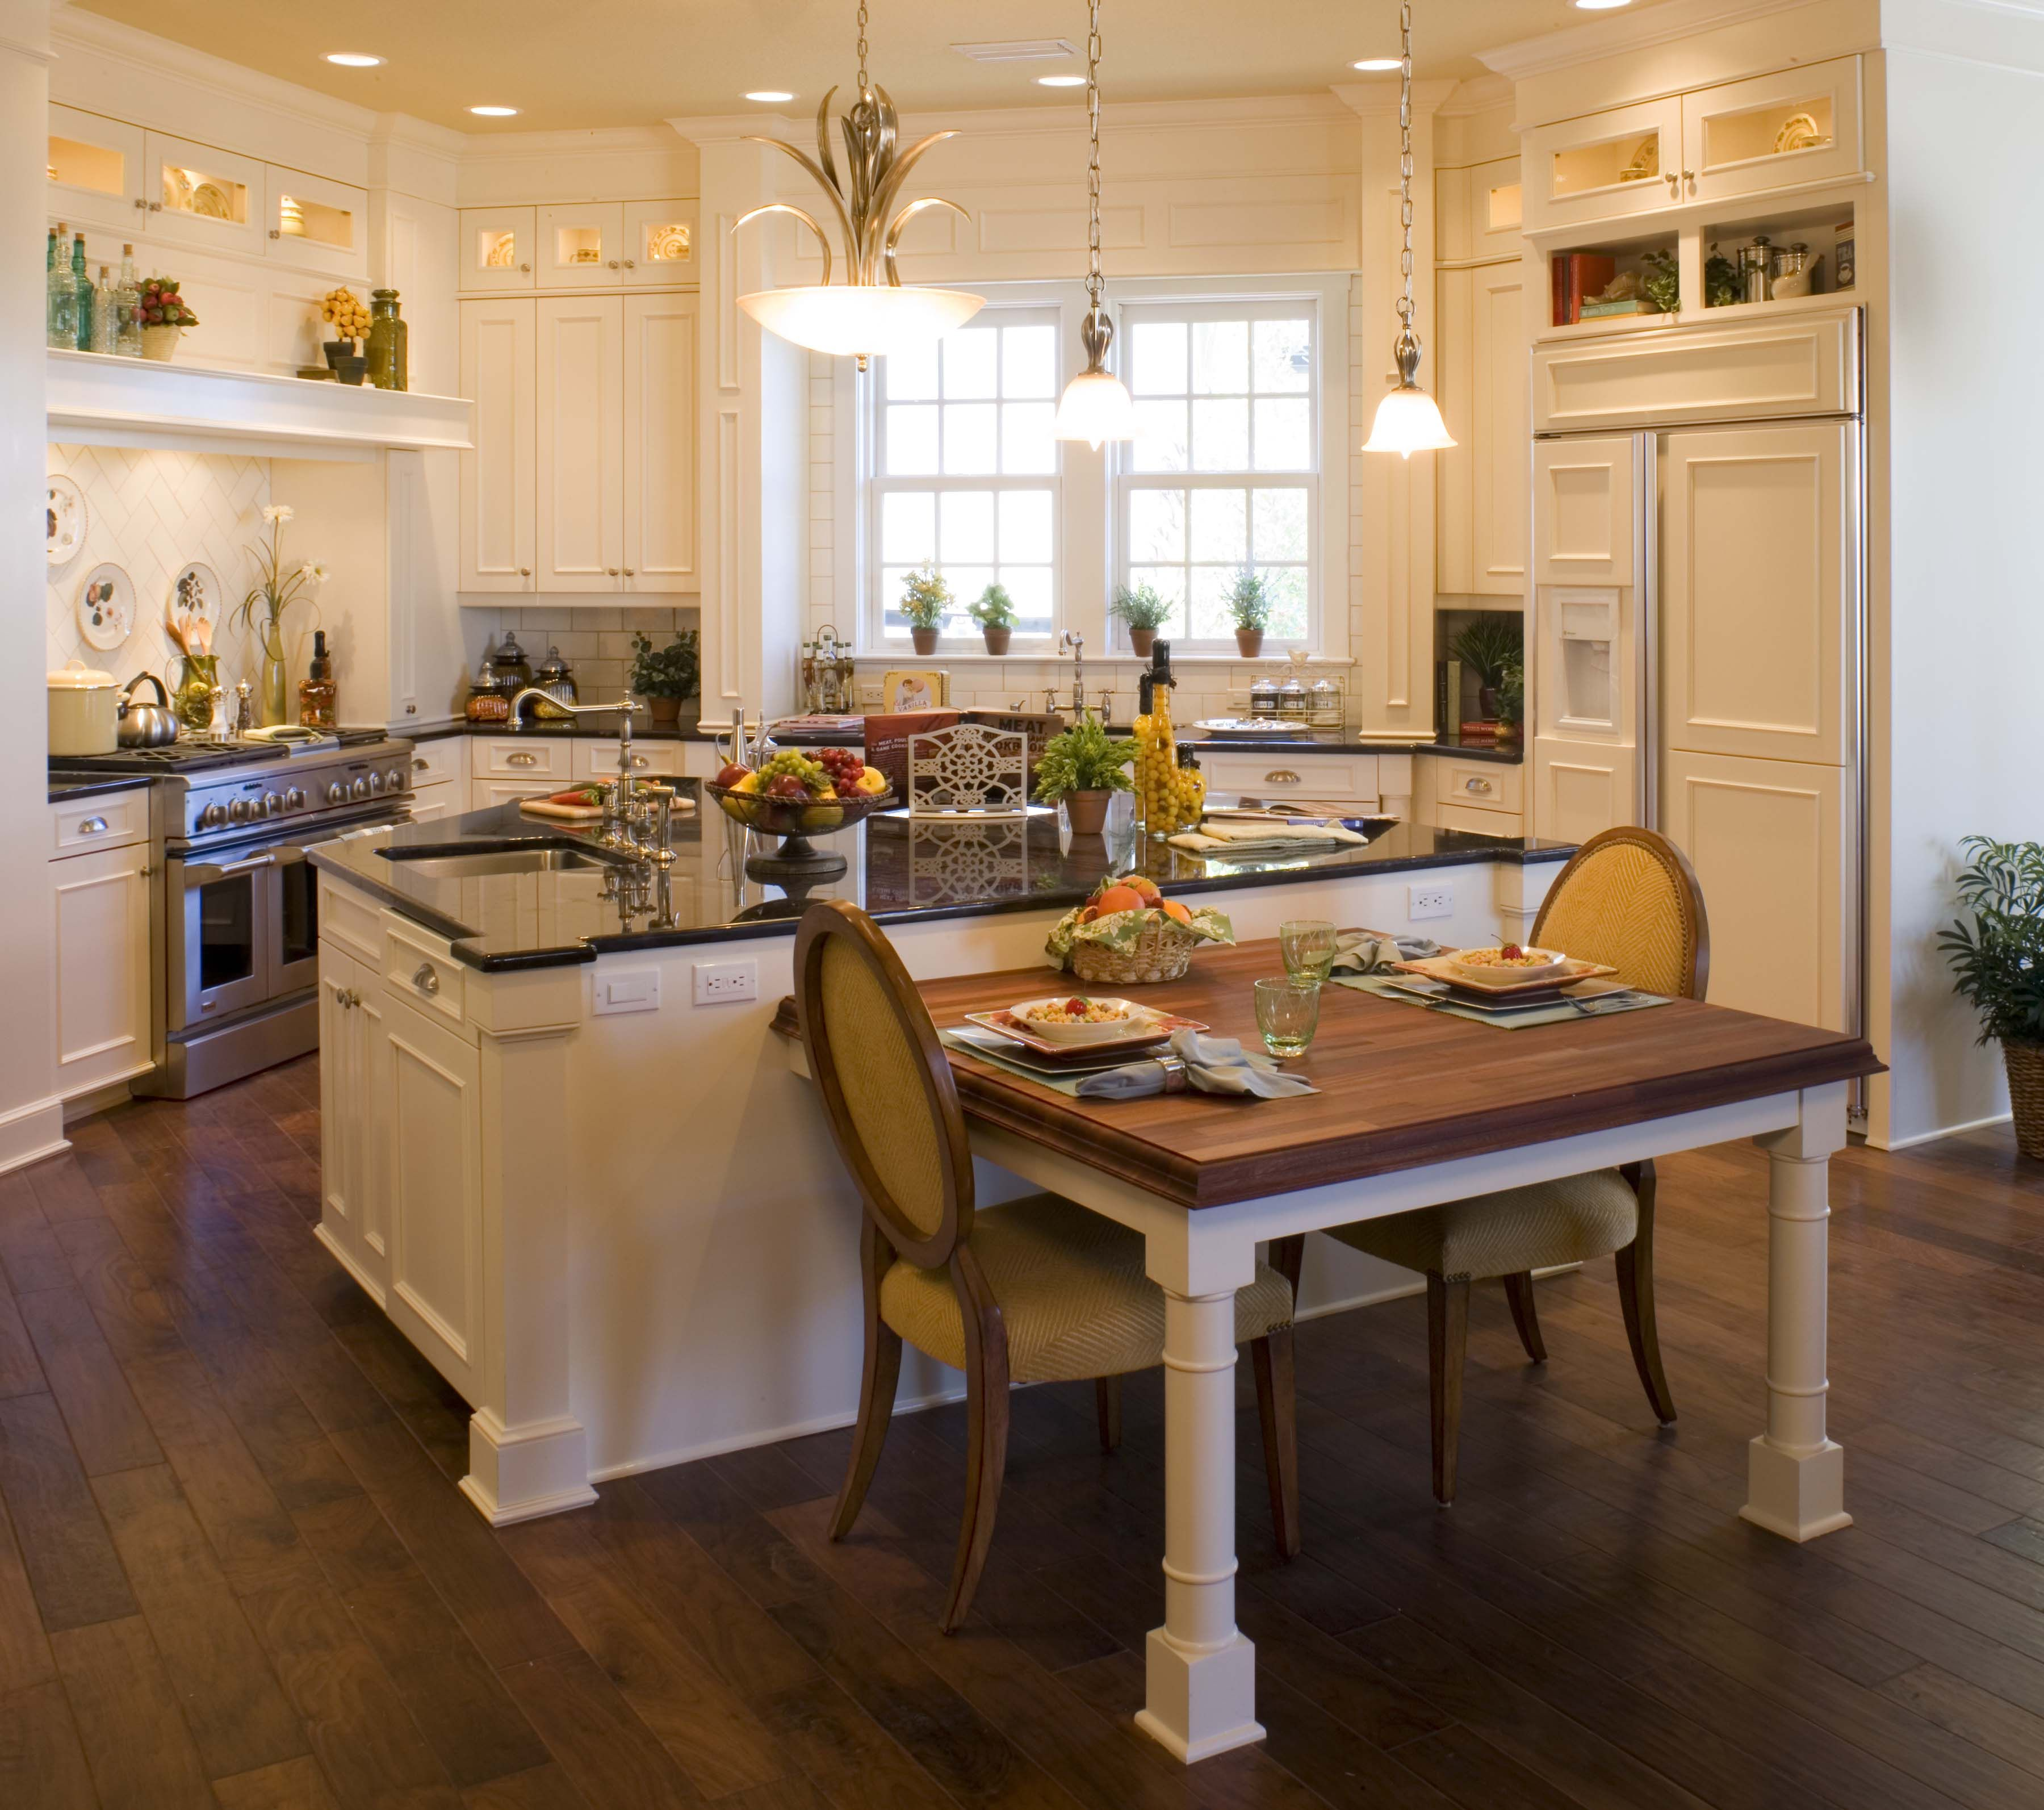 Kitchen Update With Brookhaven Island Desk: Peregrine Homes Designed This Kitchen To Have An Old